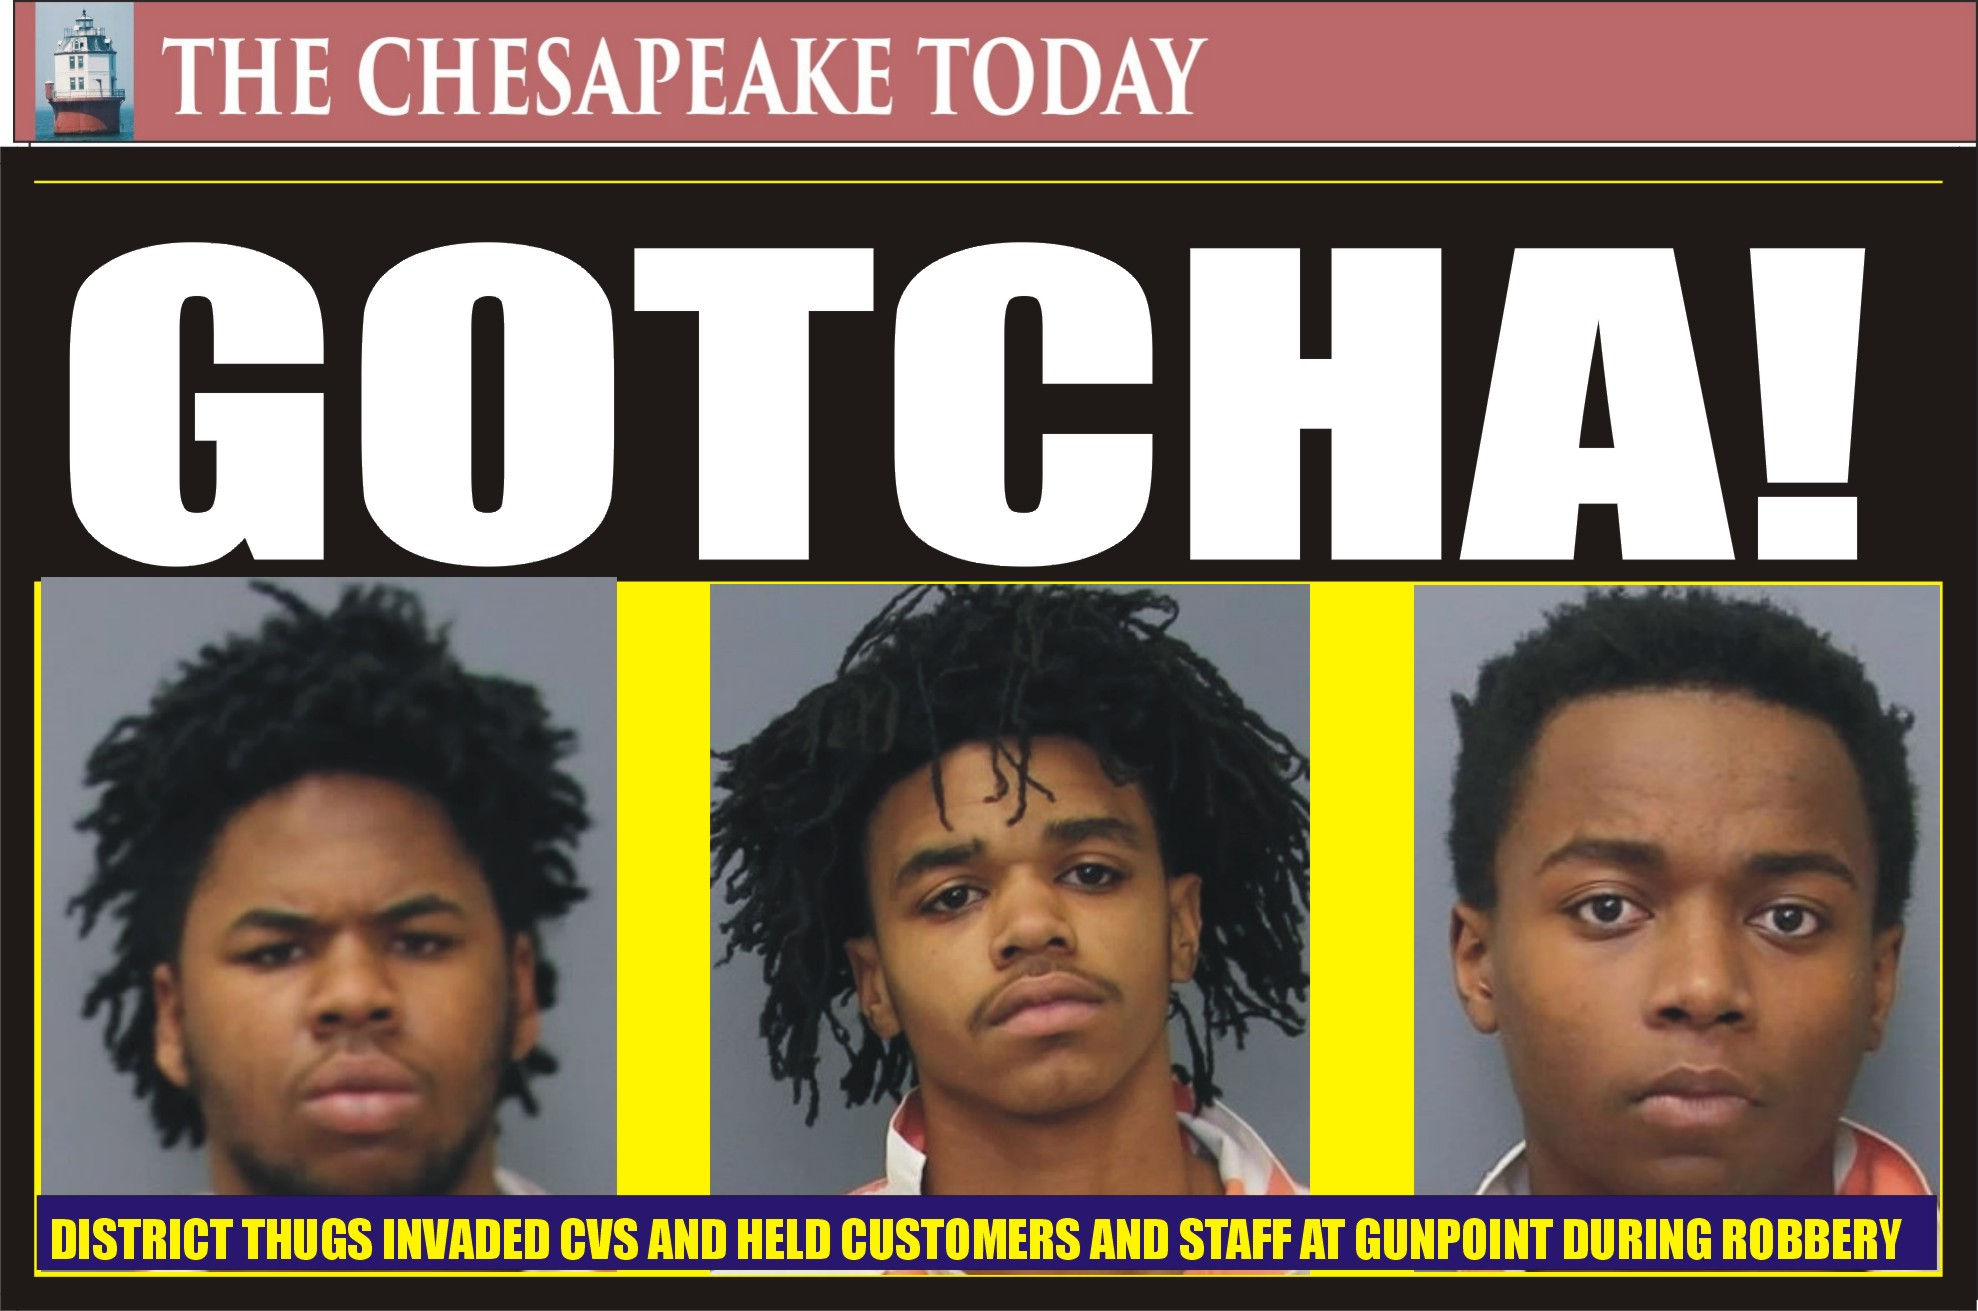 DIRTBAG ROUNDUP: Three District Mutts Busted for Armed Robbery, Carjacking